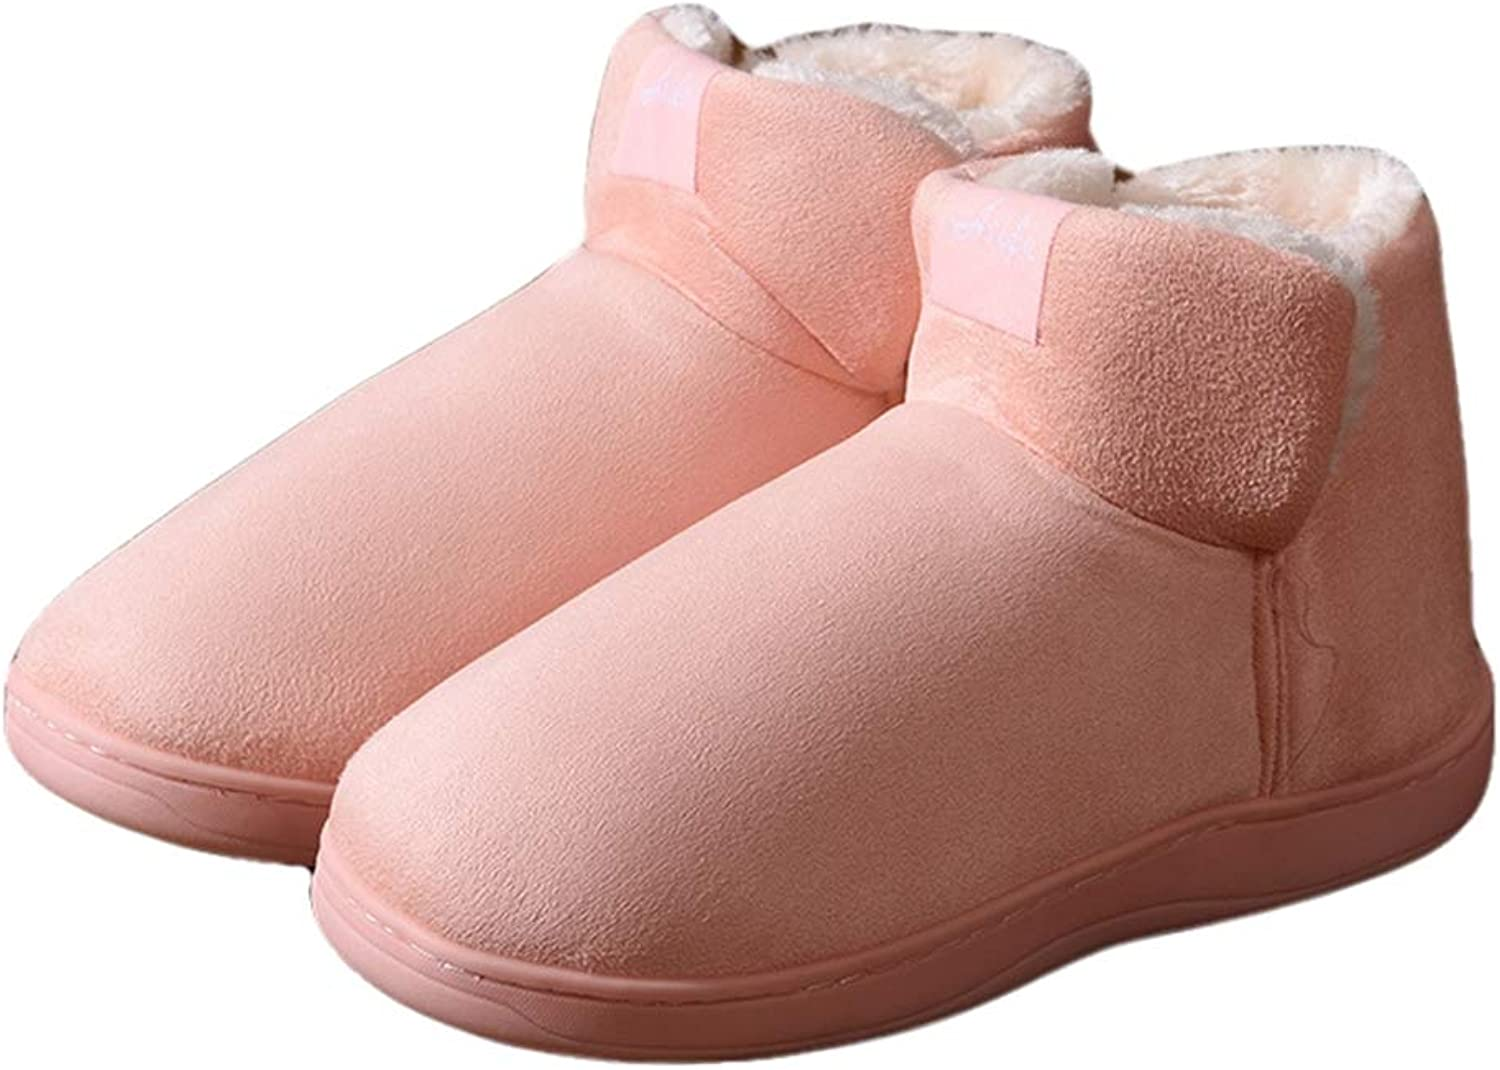 York Zhu Fruffy Home Slippers Winter Warm Plush Bootie Indoor Slip-on Non Slip